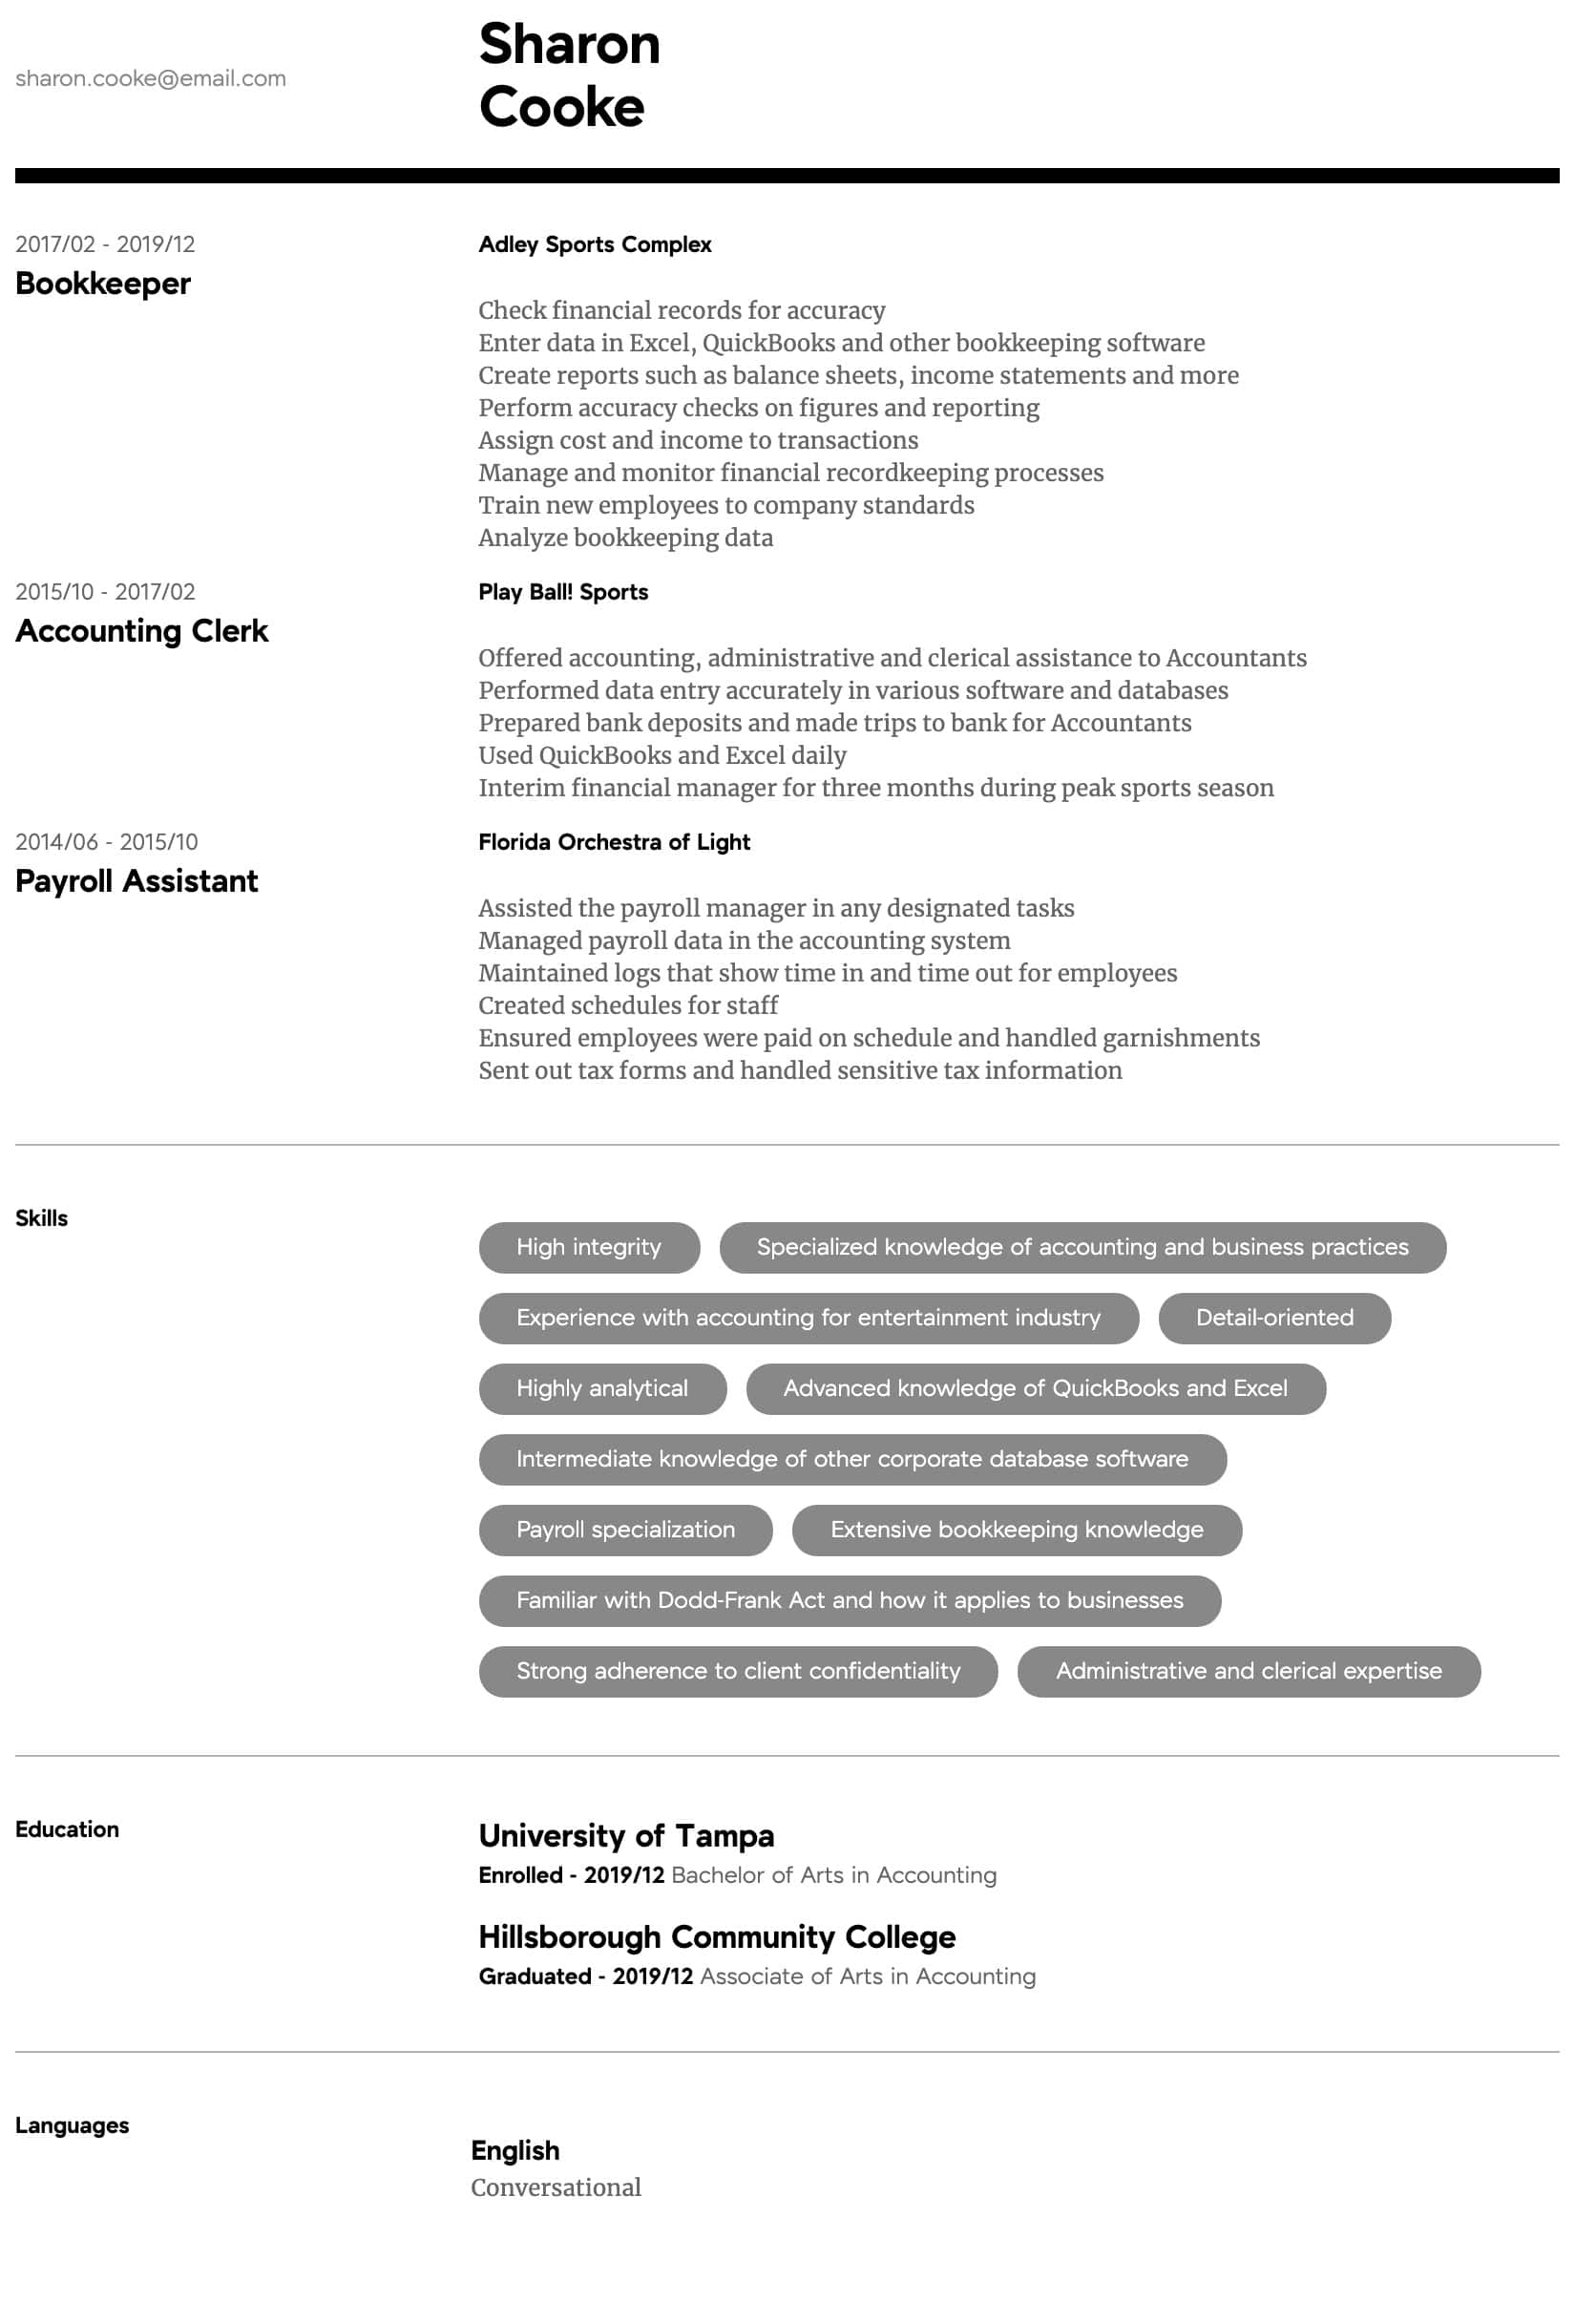 accountant resume samples all experience levels entry level staff examples intermediate Resume Entry Level Staff Accountant Resume Examples